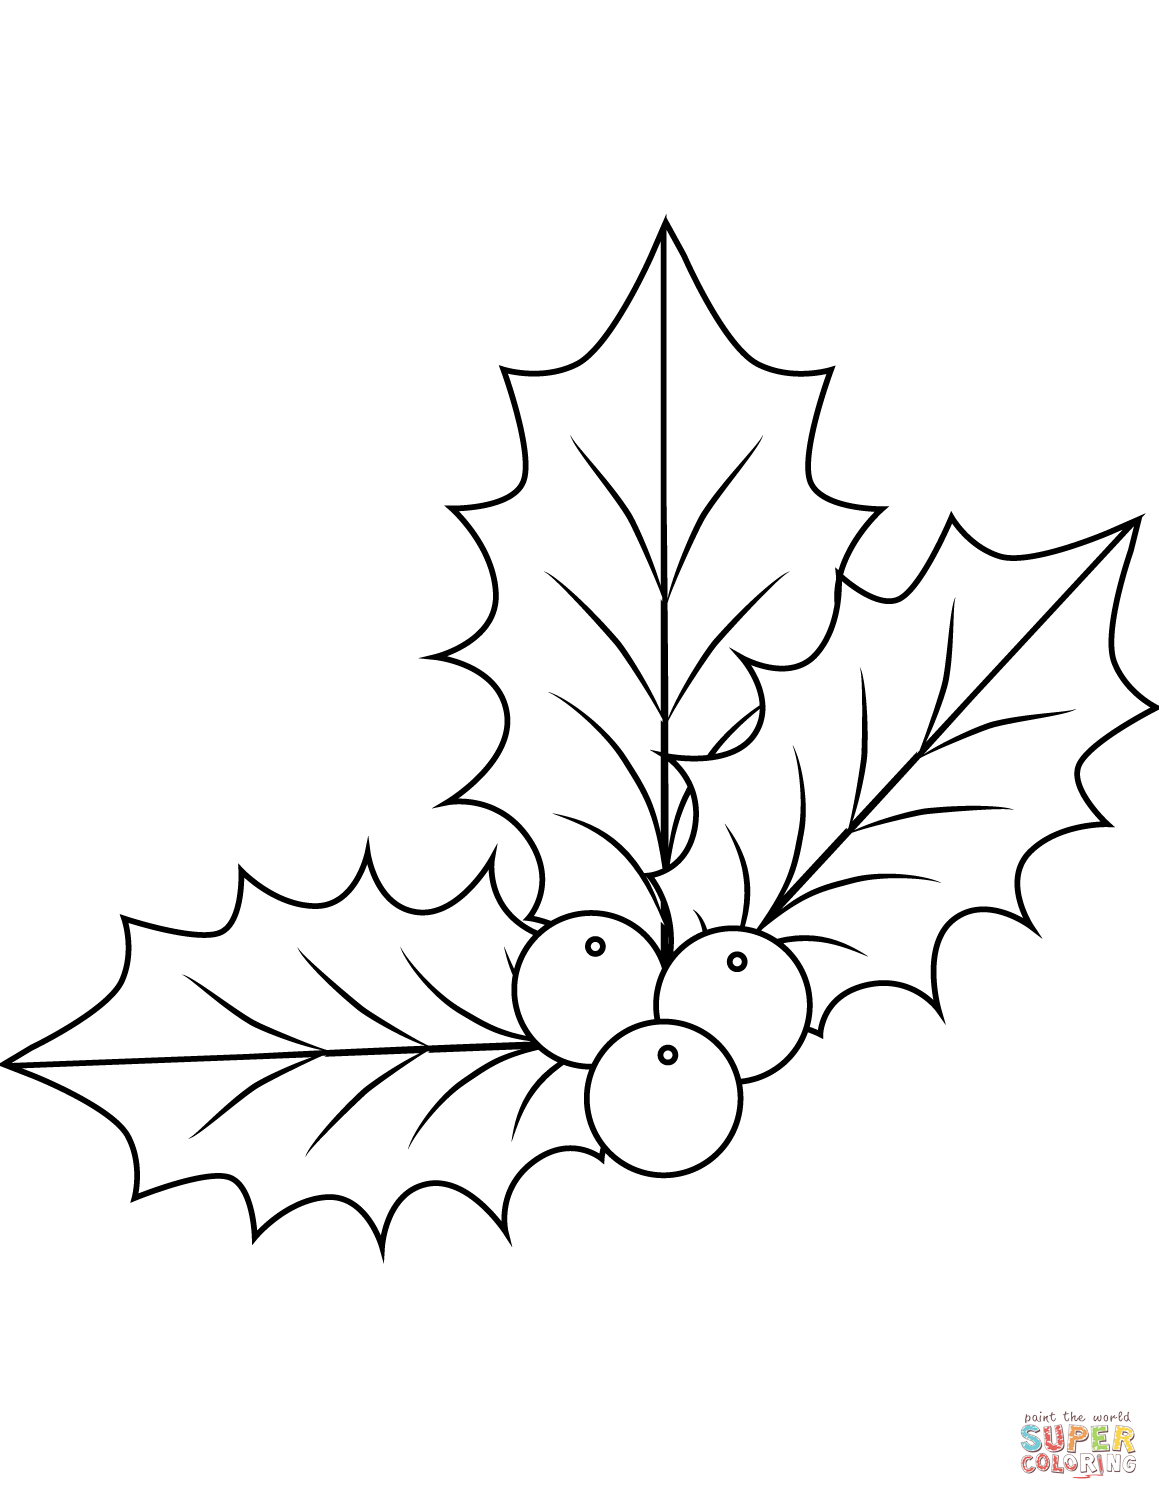 christmas holly border coloring pages - photo#20